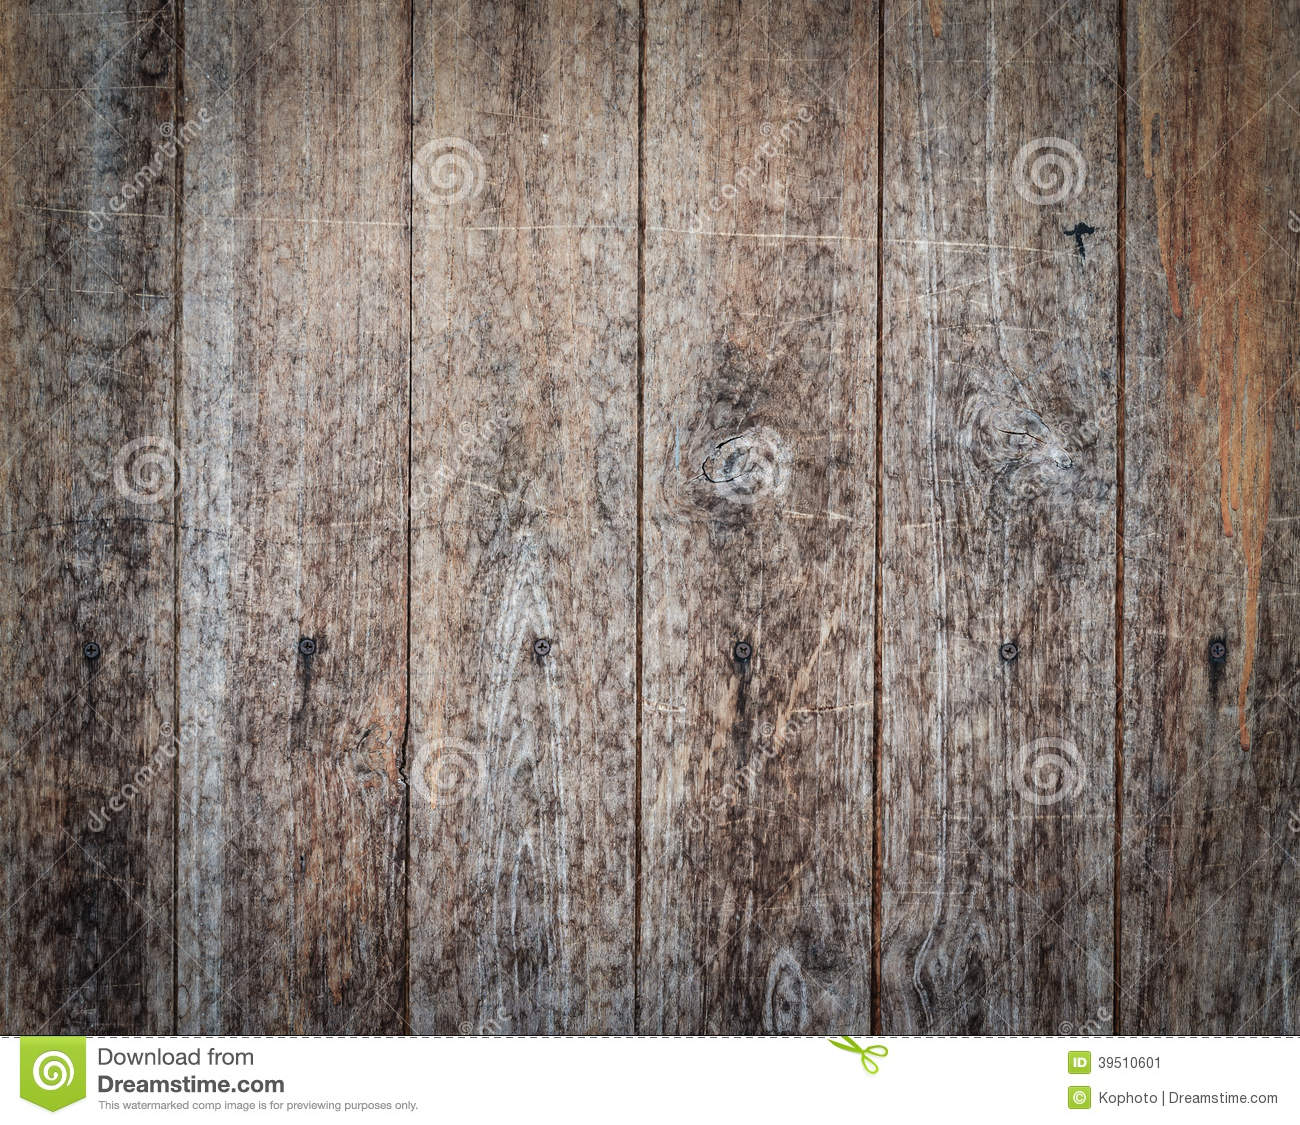 Brown wood background